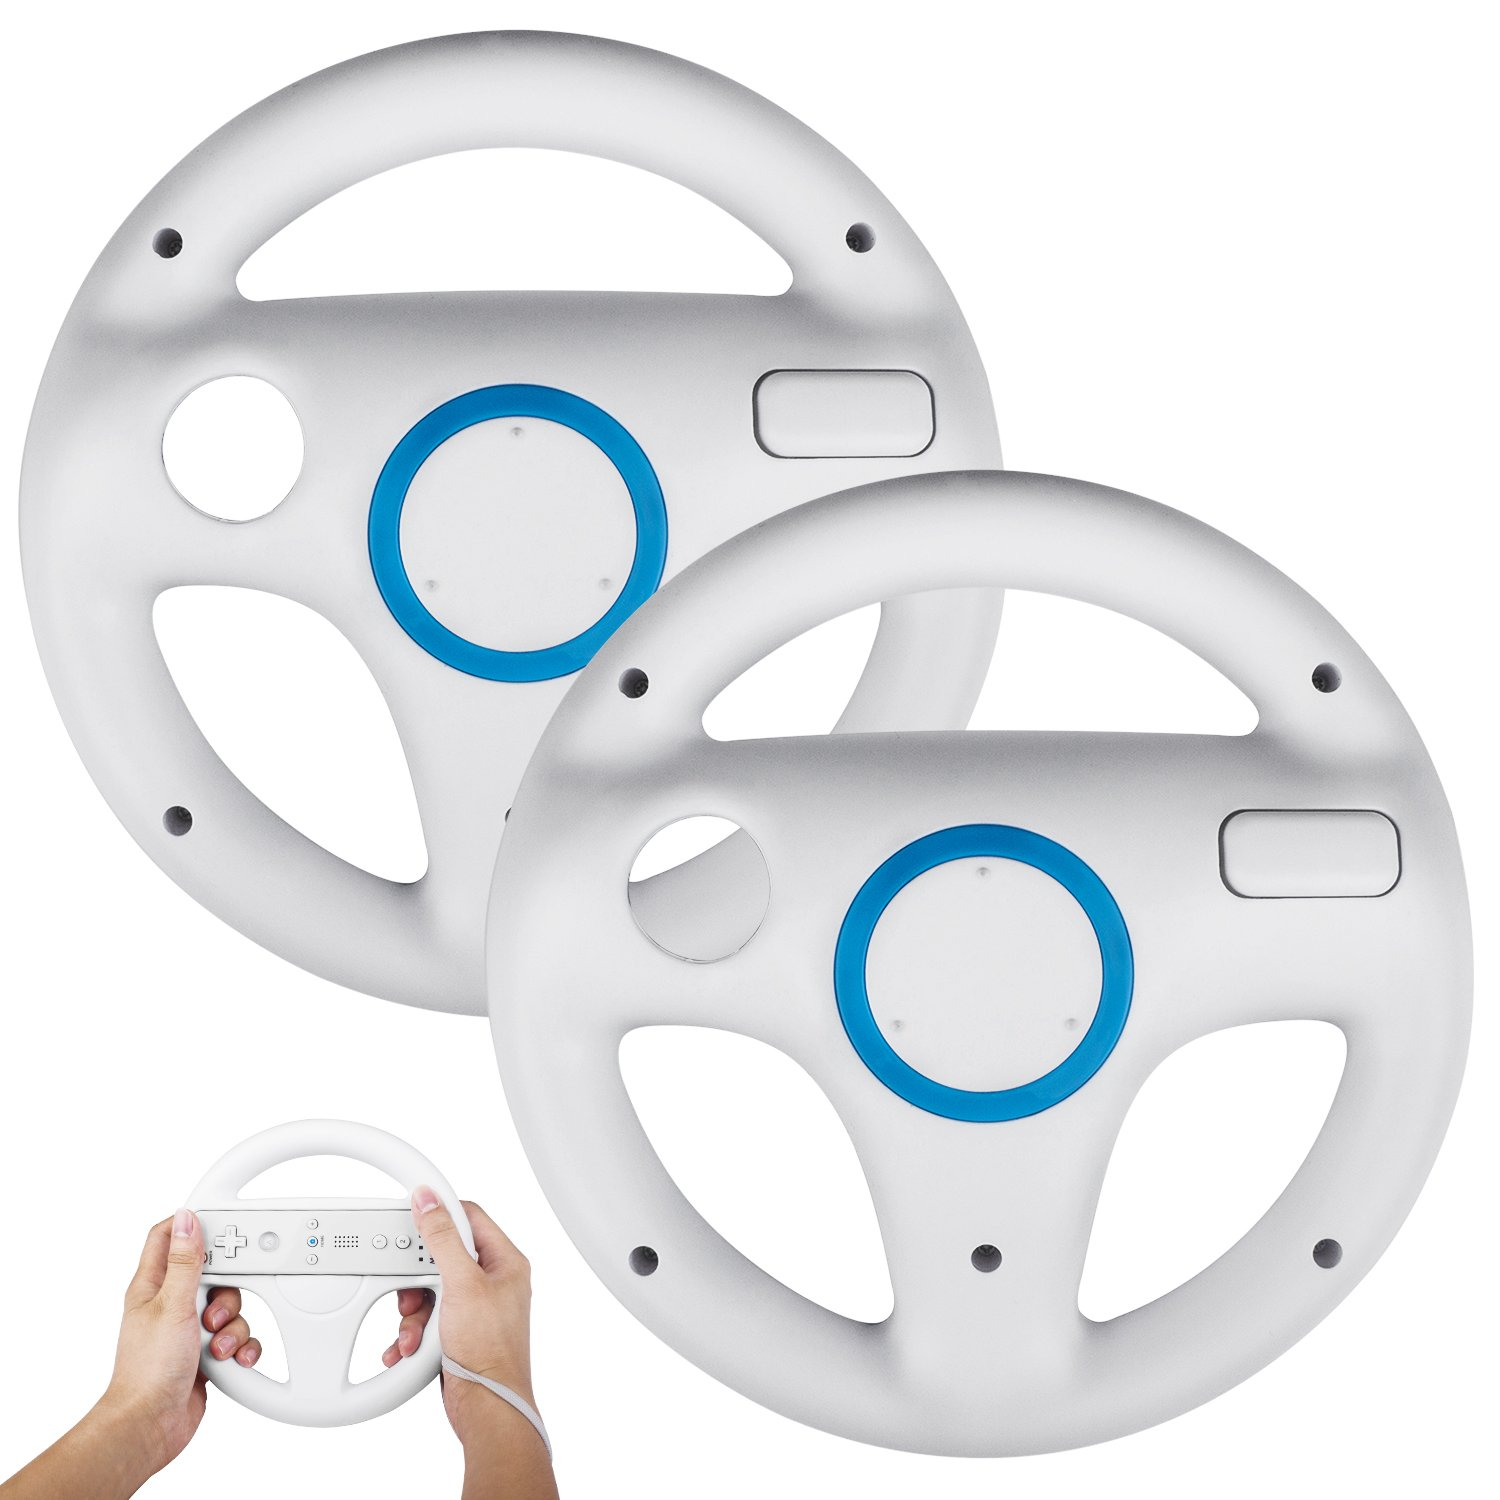 TechKen 2Pack Mario Kart Wii Steering Wheels, Mario Kart Racing Wheel for  Nintendo Wii, Mario Kart, Tank, more Wii or Wii U racing games.